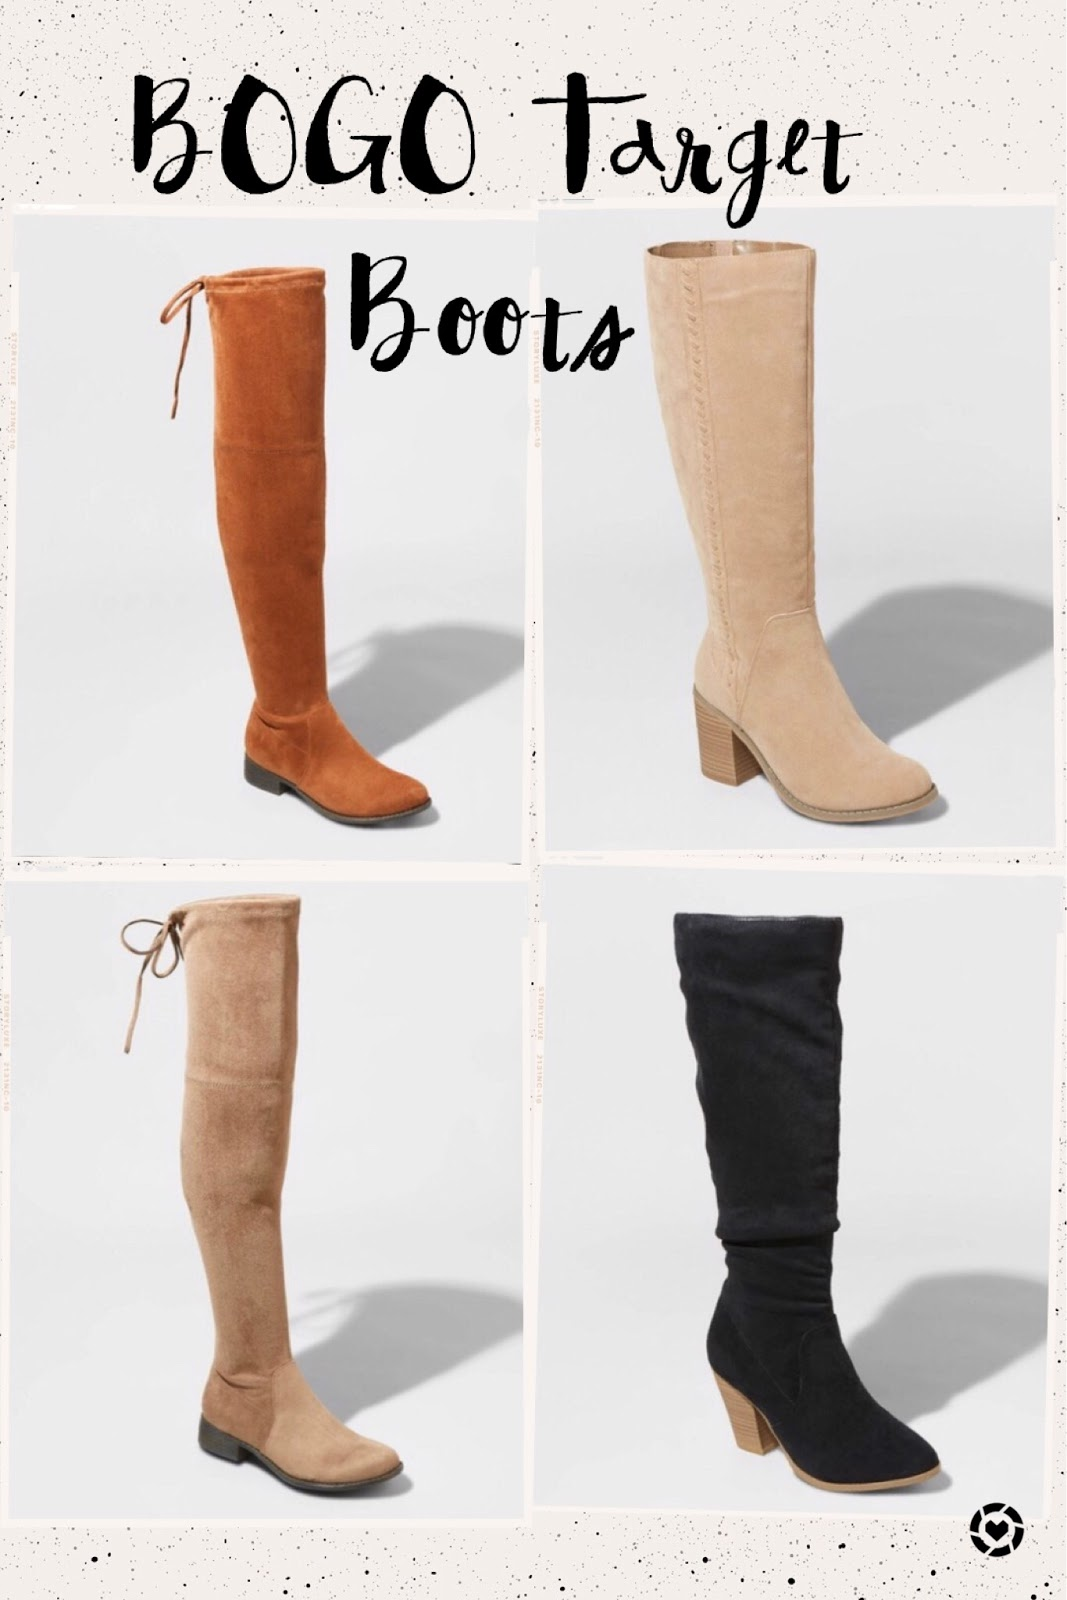 Best Boots for Fall 2019 Under $50 - Affordable by Amanda, Florida style blogger shares her Target boot finds for less than $50 this fall season